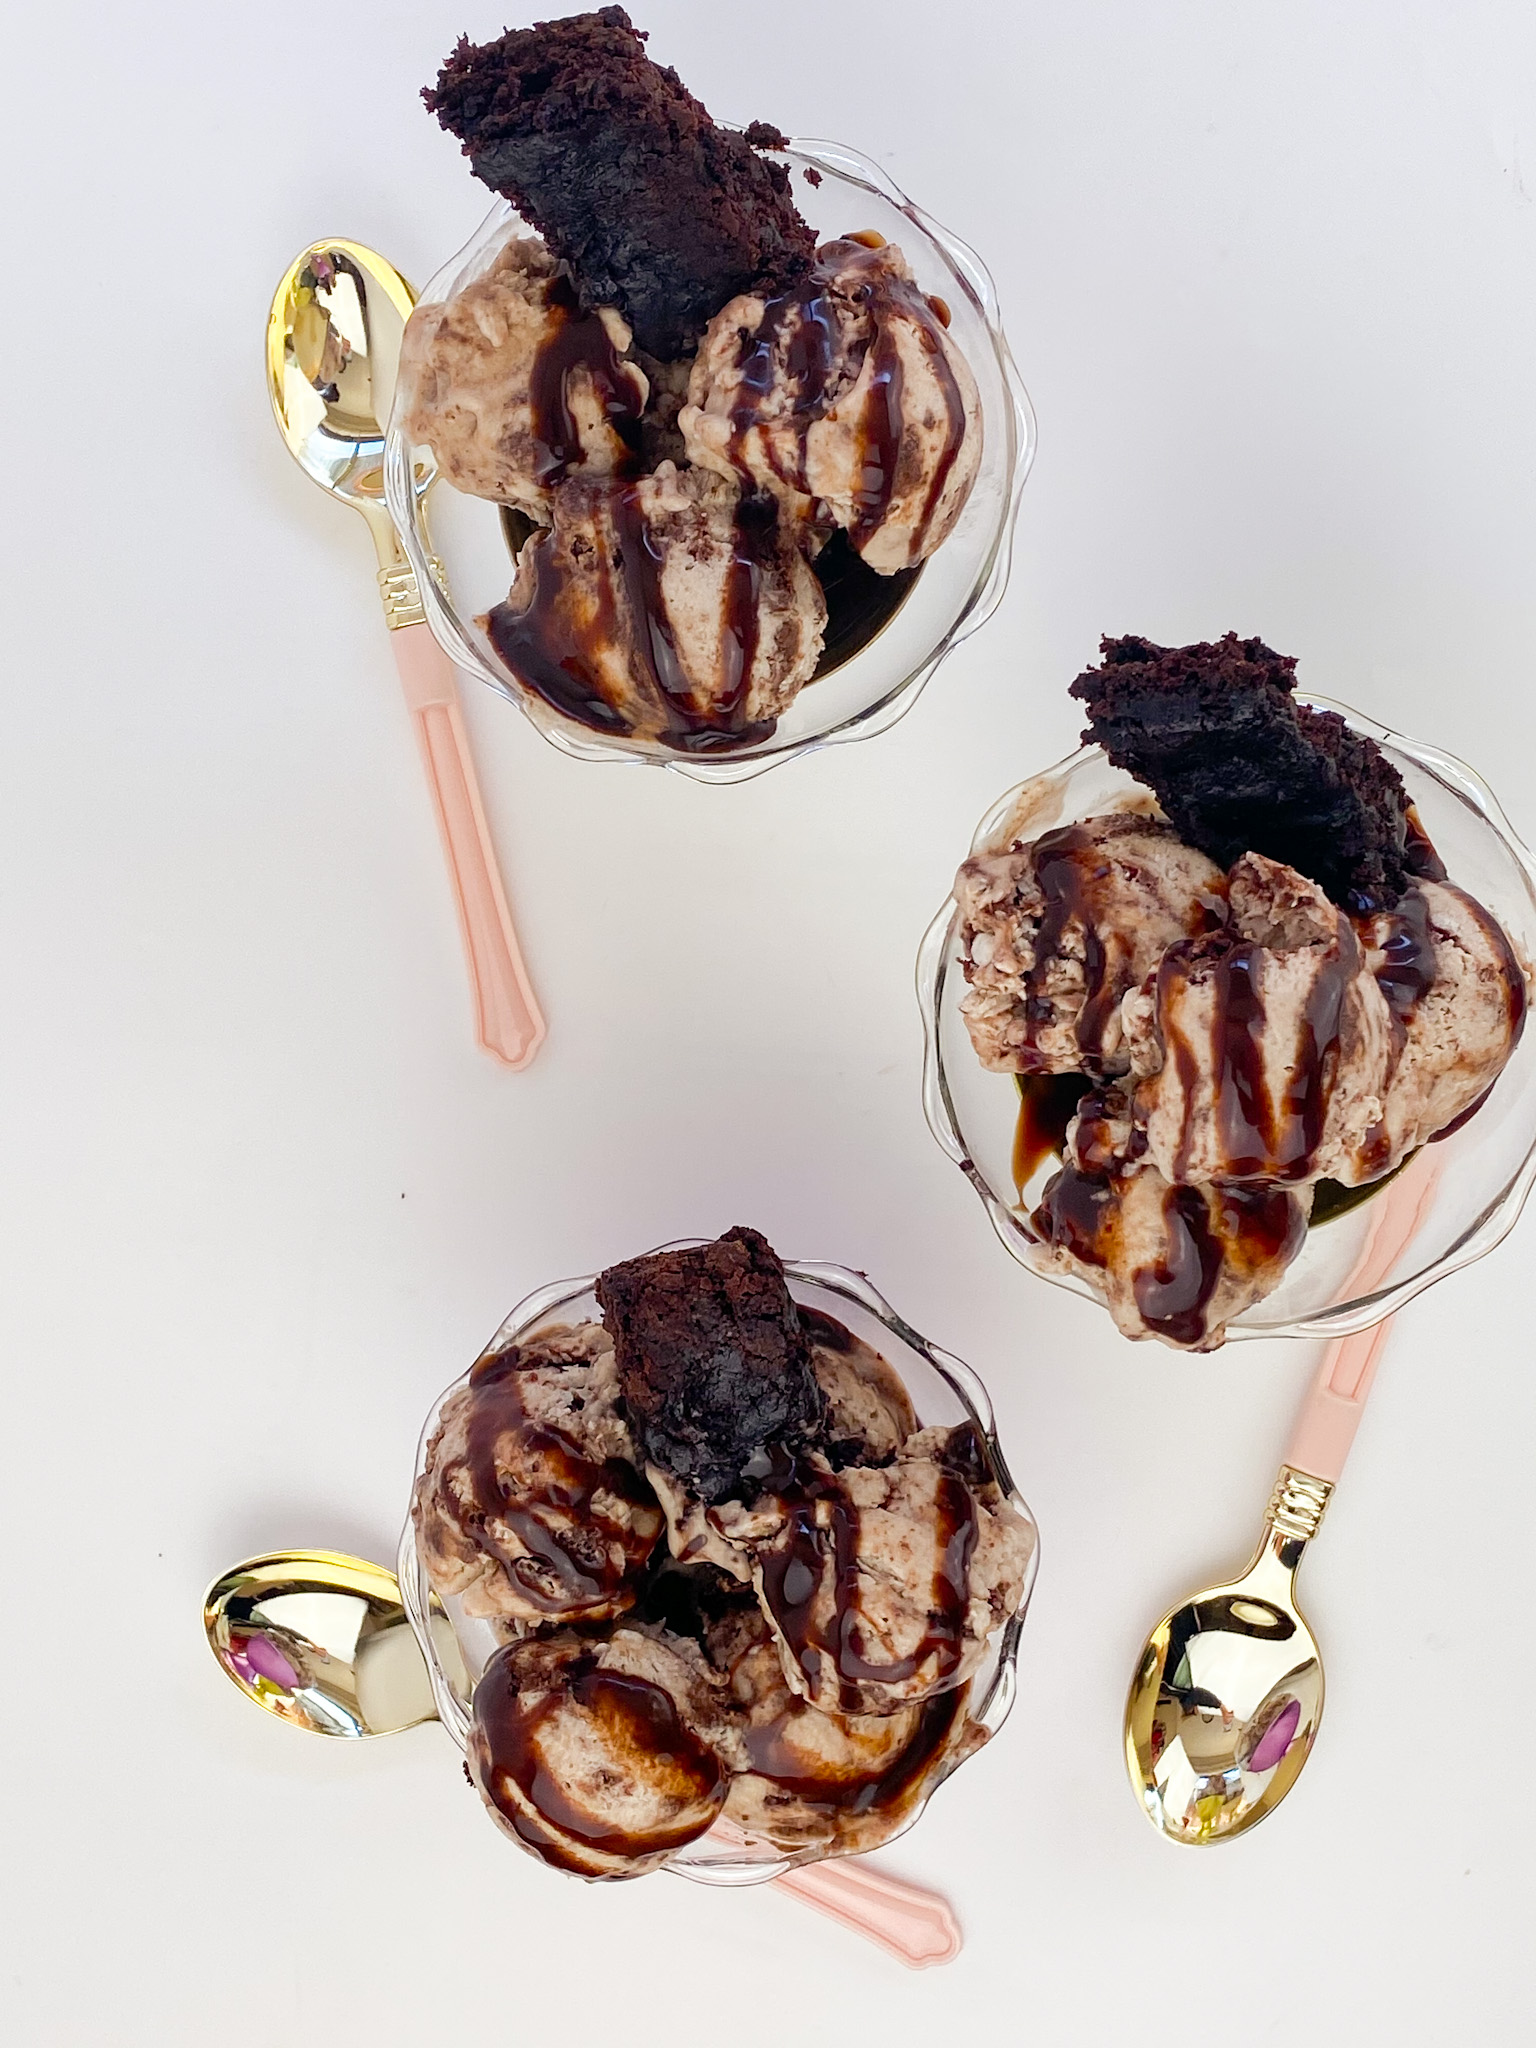 Kate's Safe & Sweet - Brownie Ice Cream Trio in Bowls